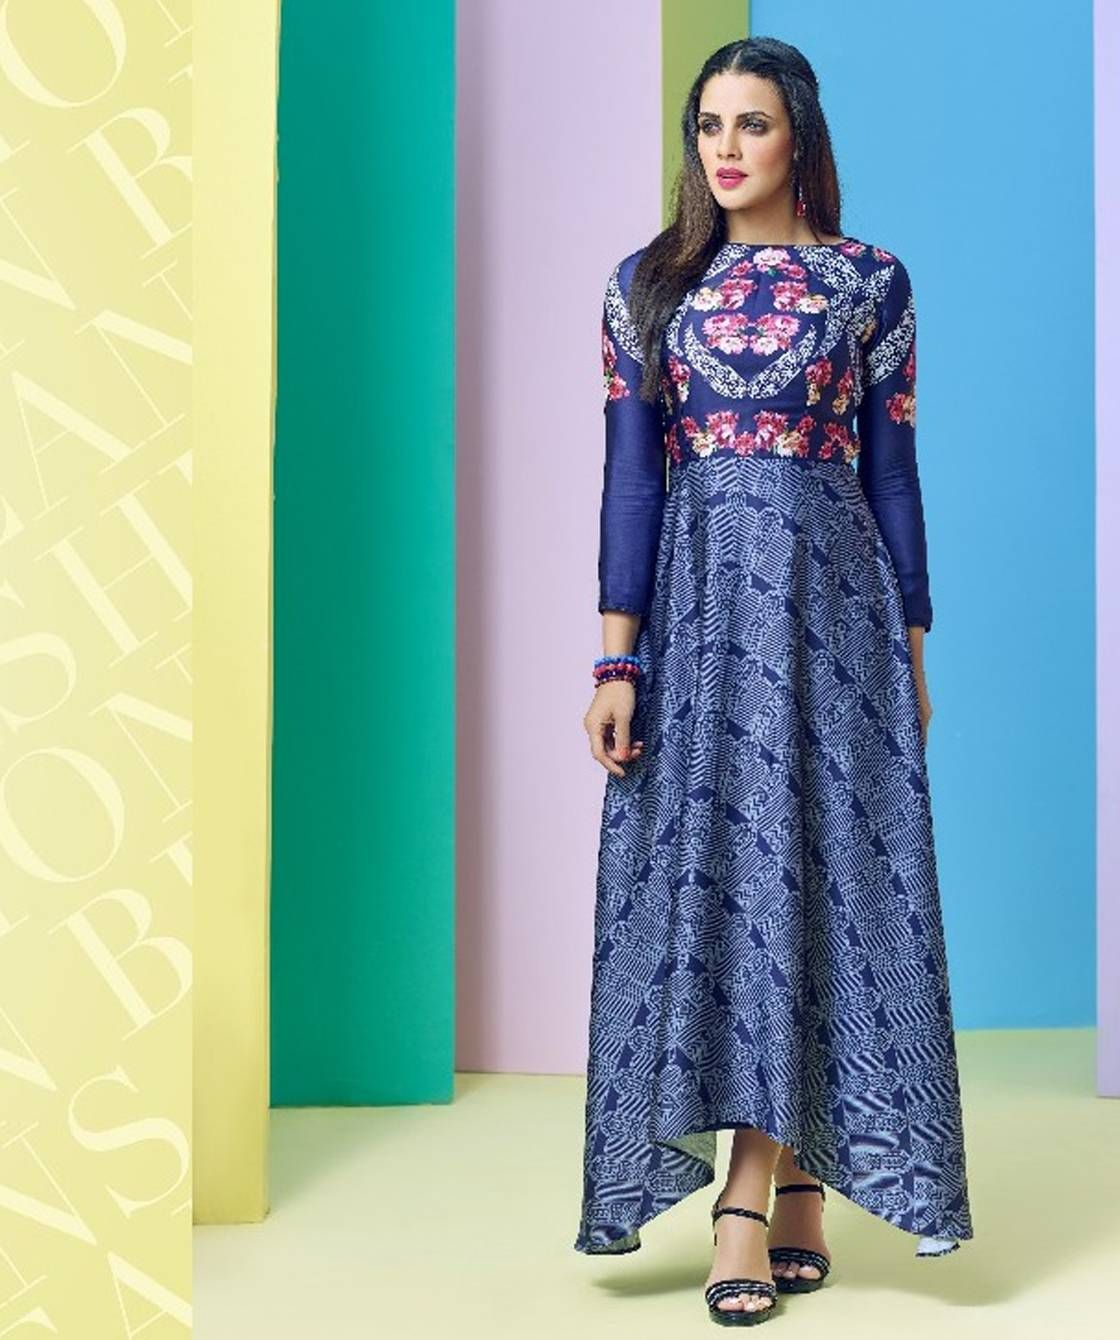 New Arrival Kurtis Online in India | Latest Styles